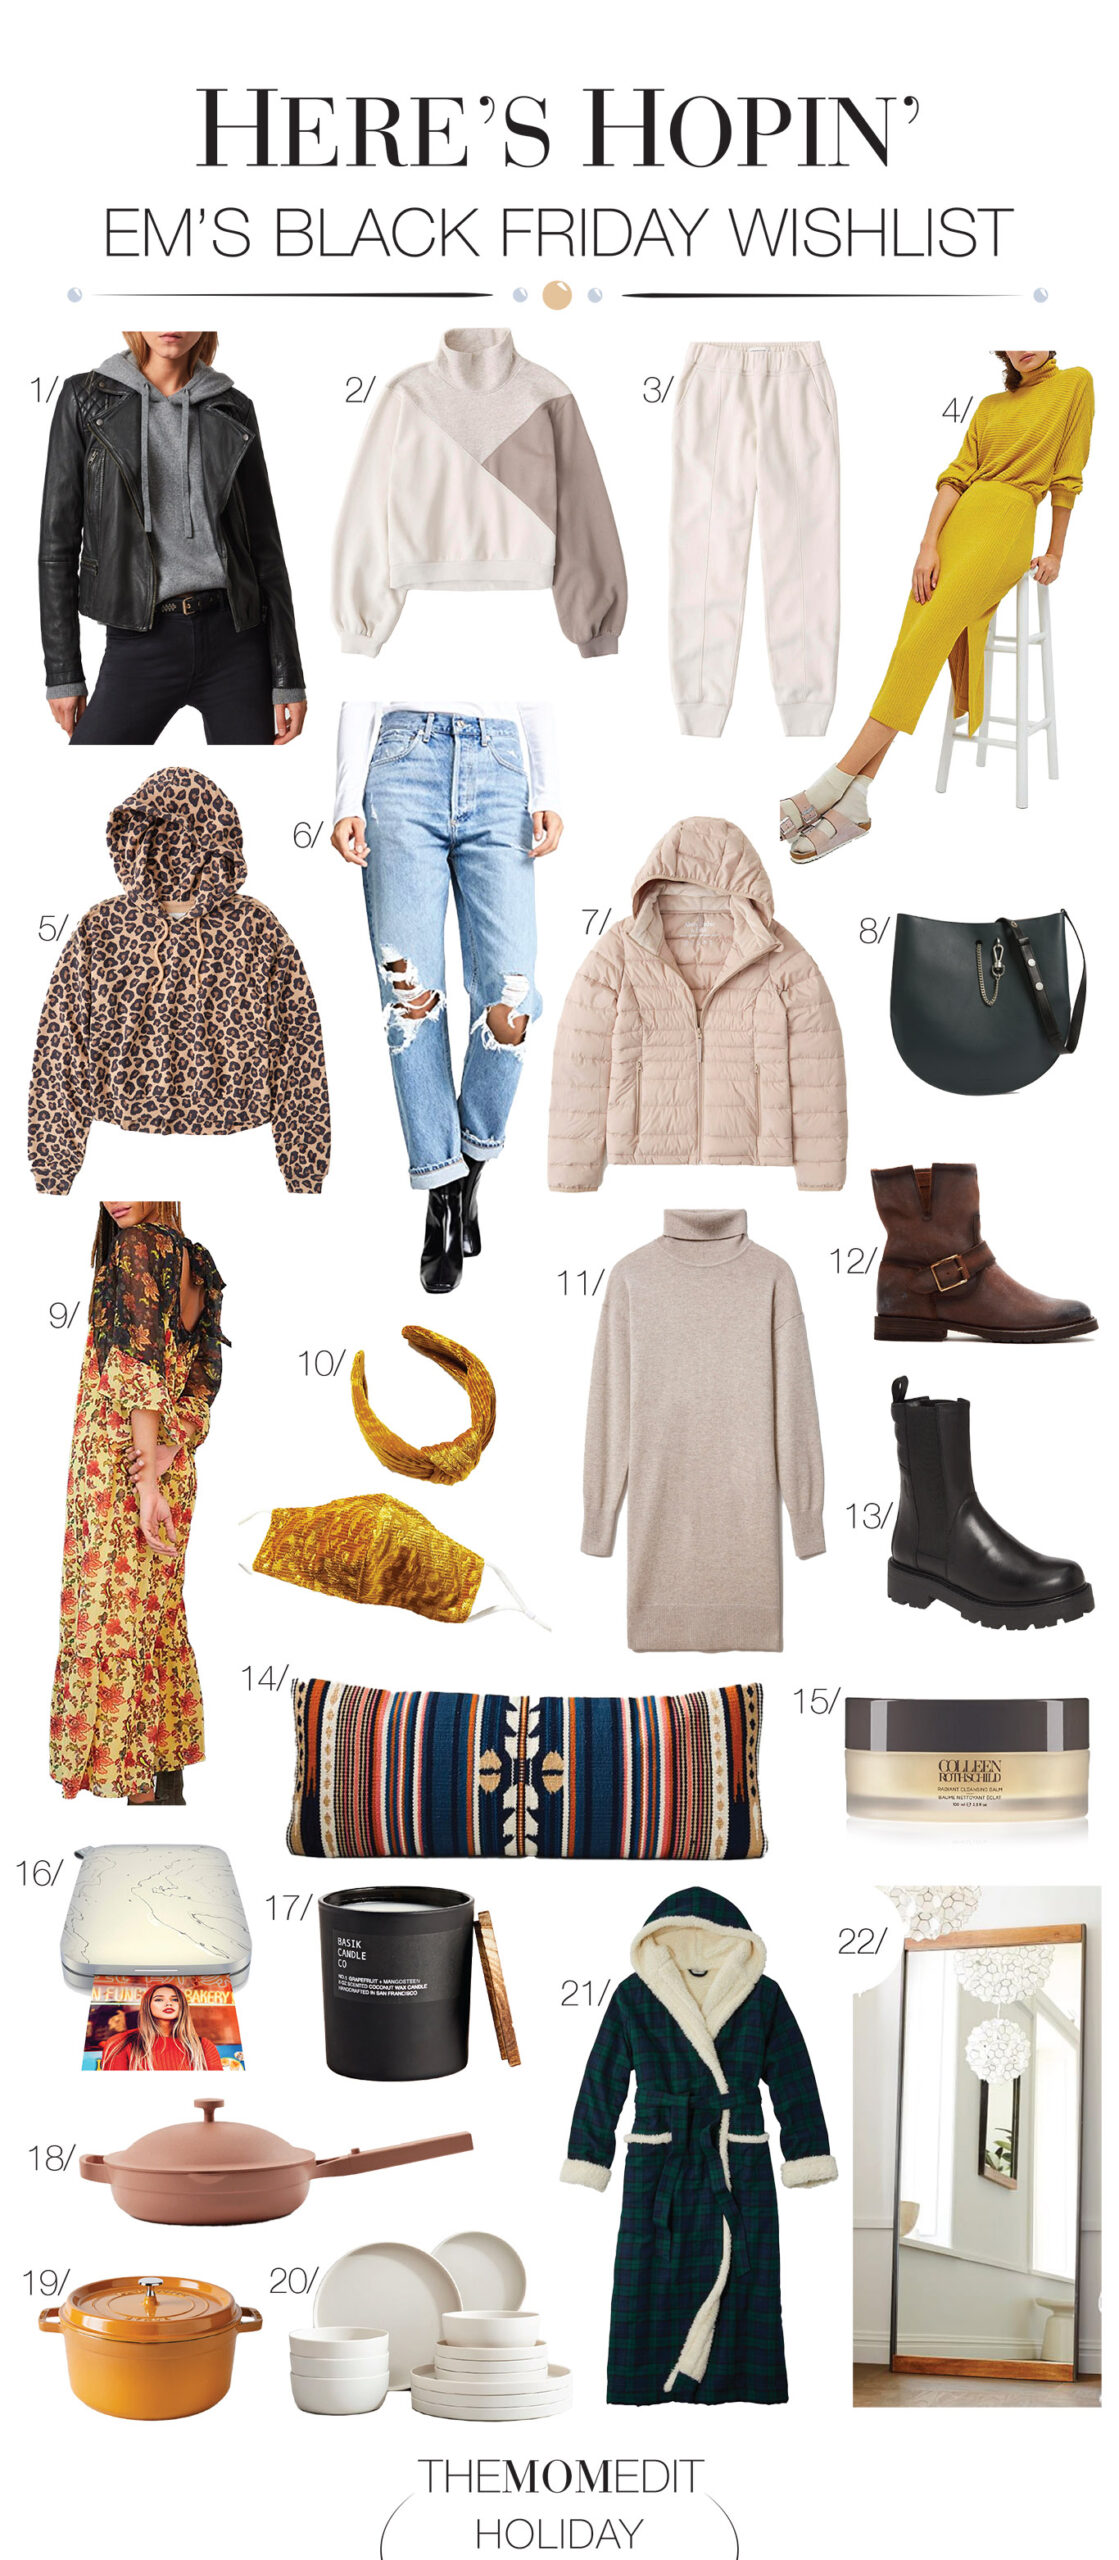 A Black Friday wishlist full of high-end fashion & home fun that's already on sale. Think AllSaints, Anthro, Abercrombie, Colleen Rothschild & Pottery Barn. YASSS.